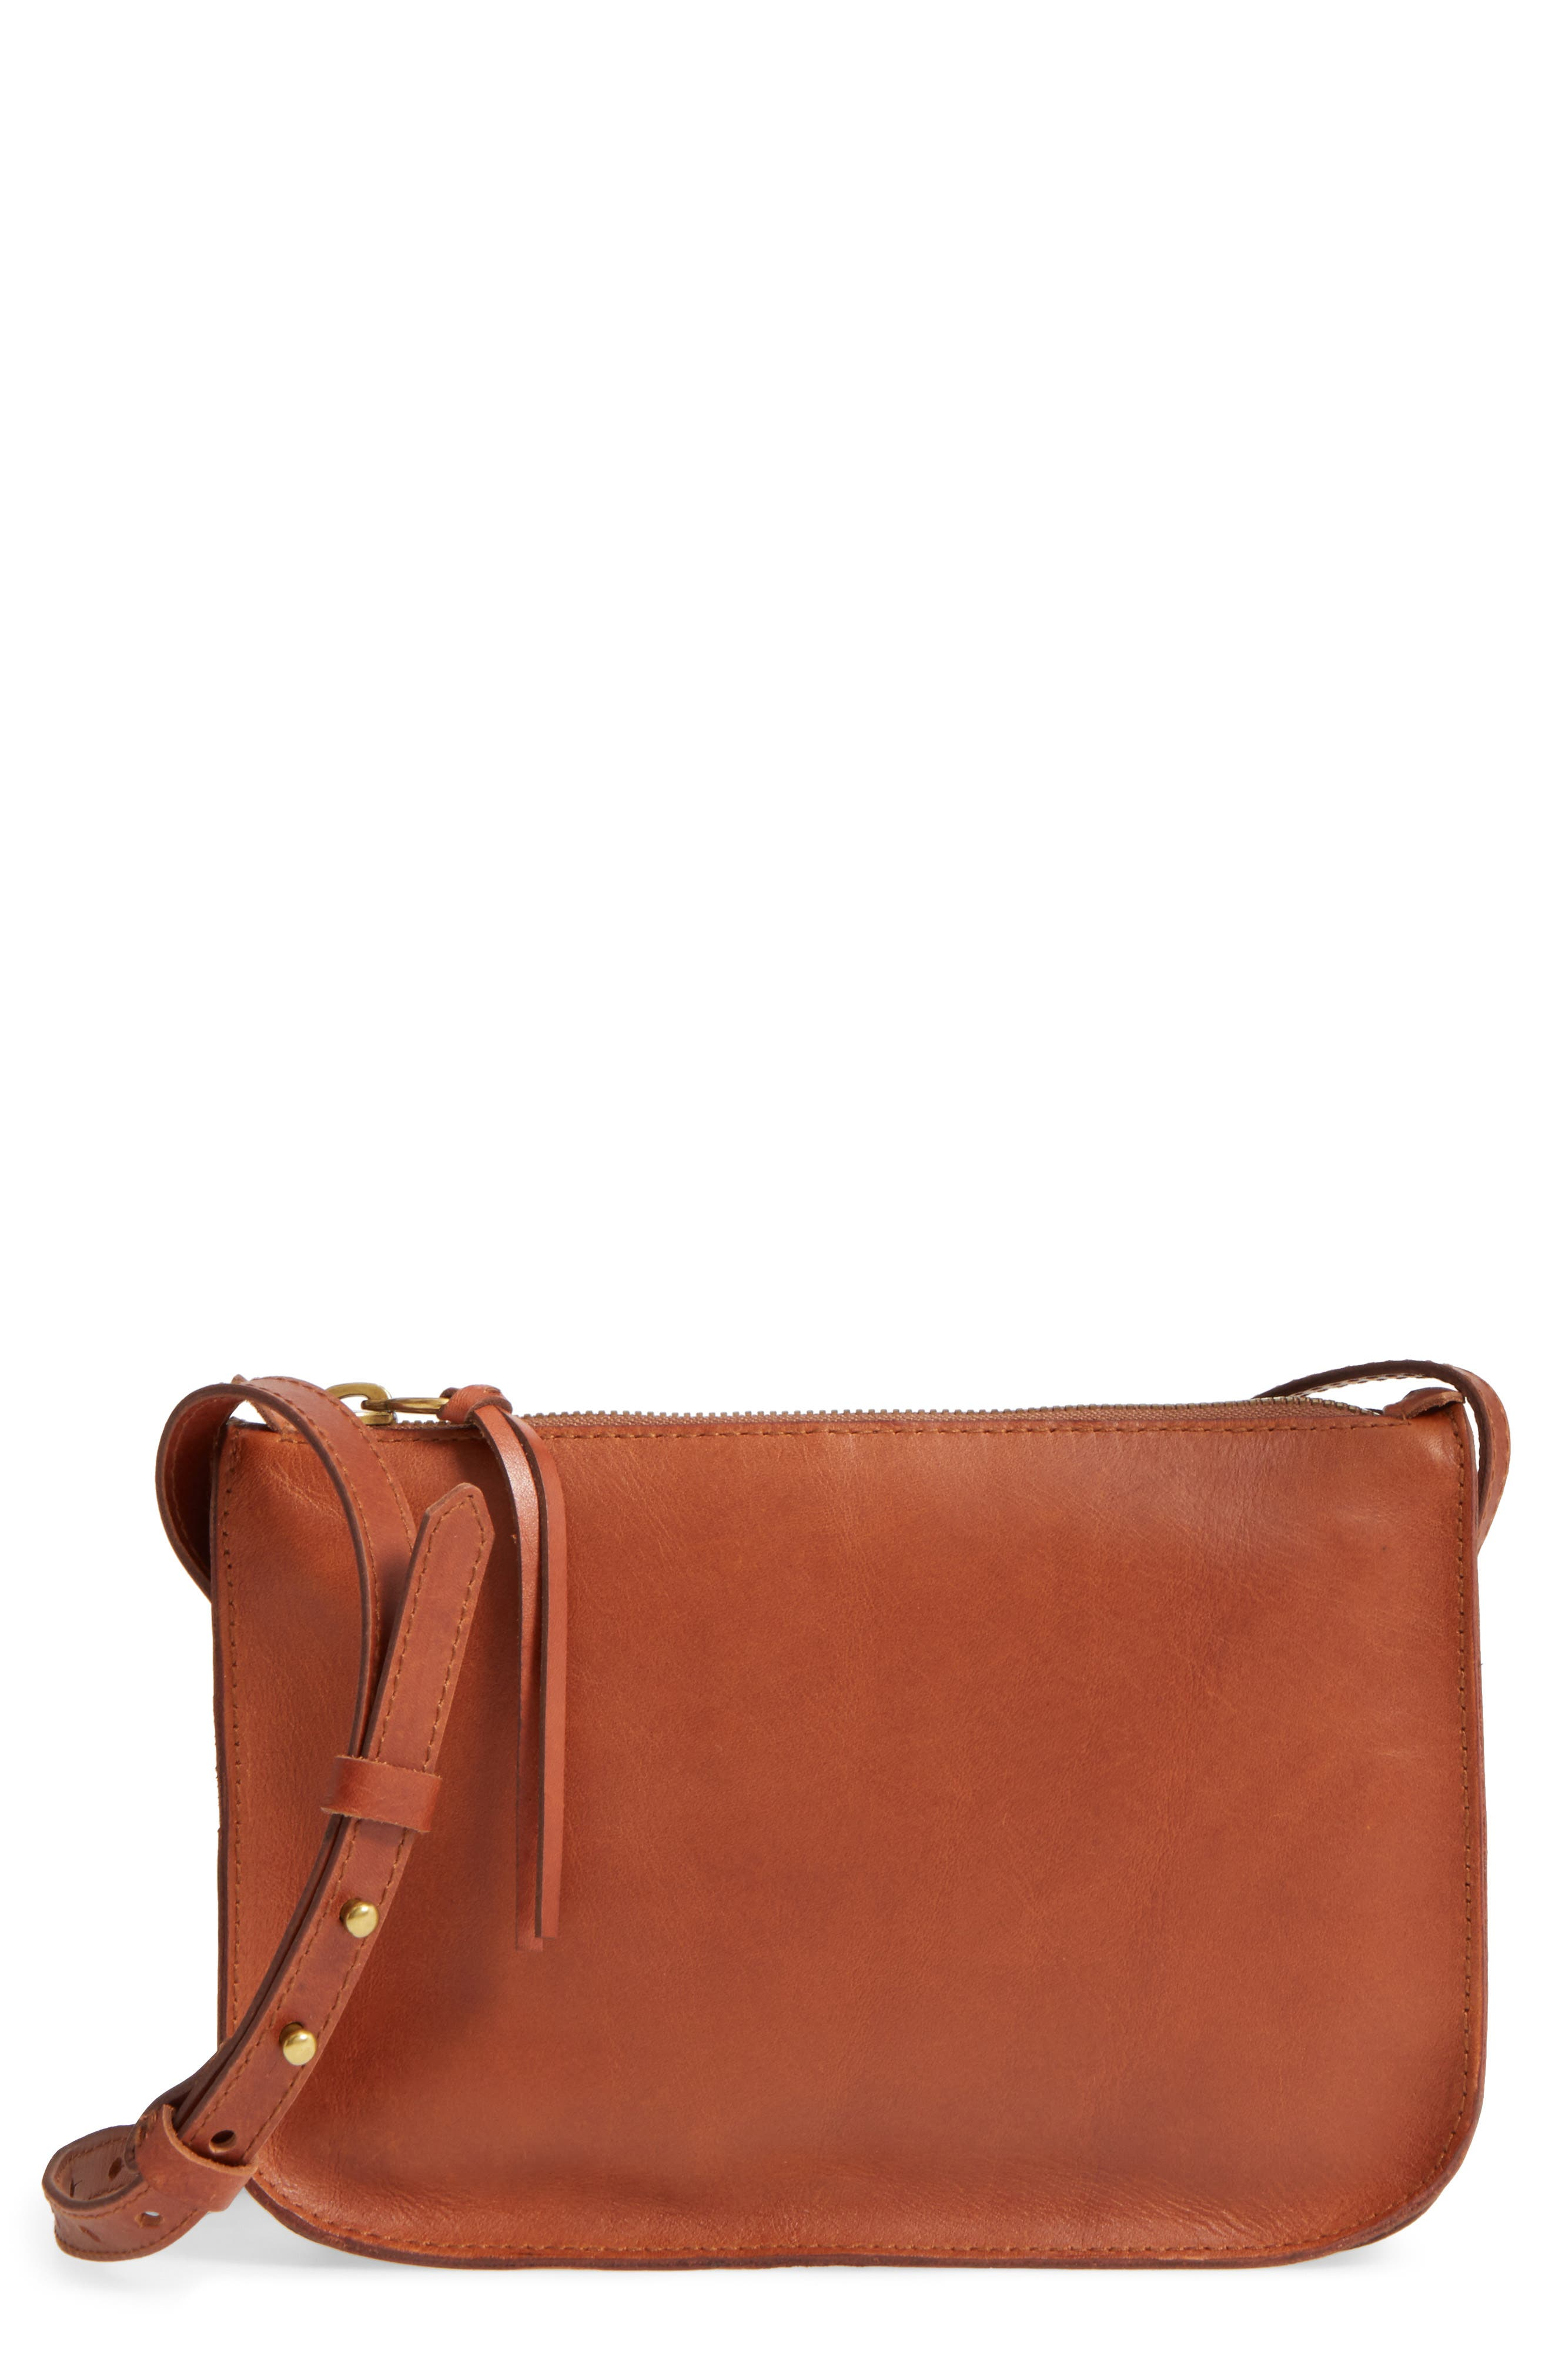 Alternate Image 1 Selected - Madewell The Simple Leather Crossbody Bag